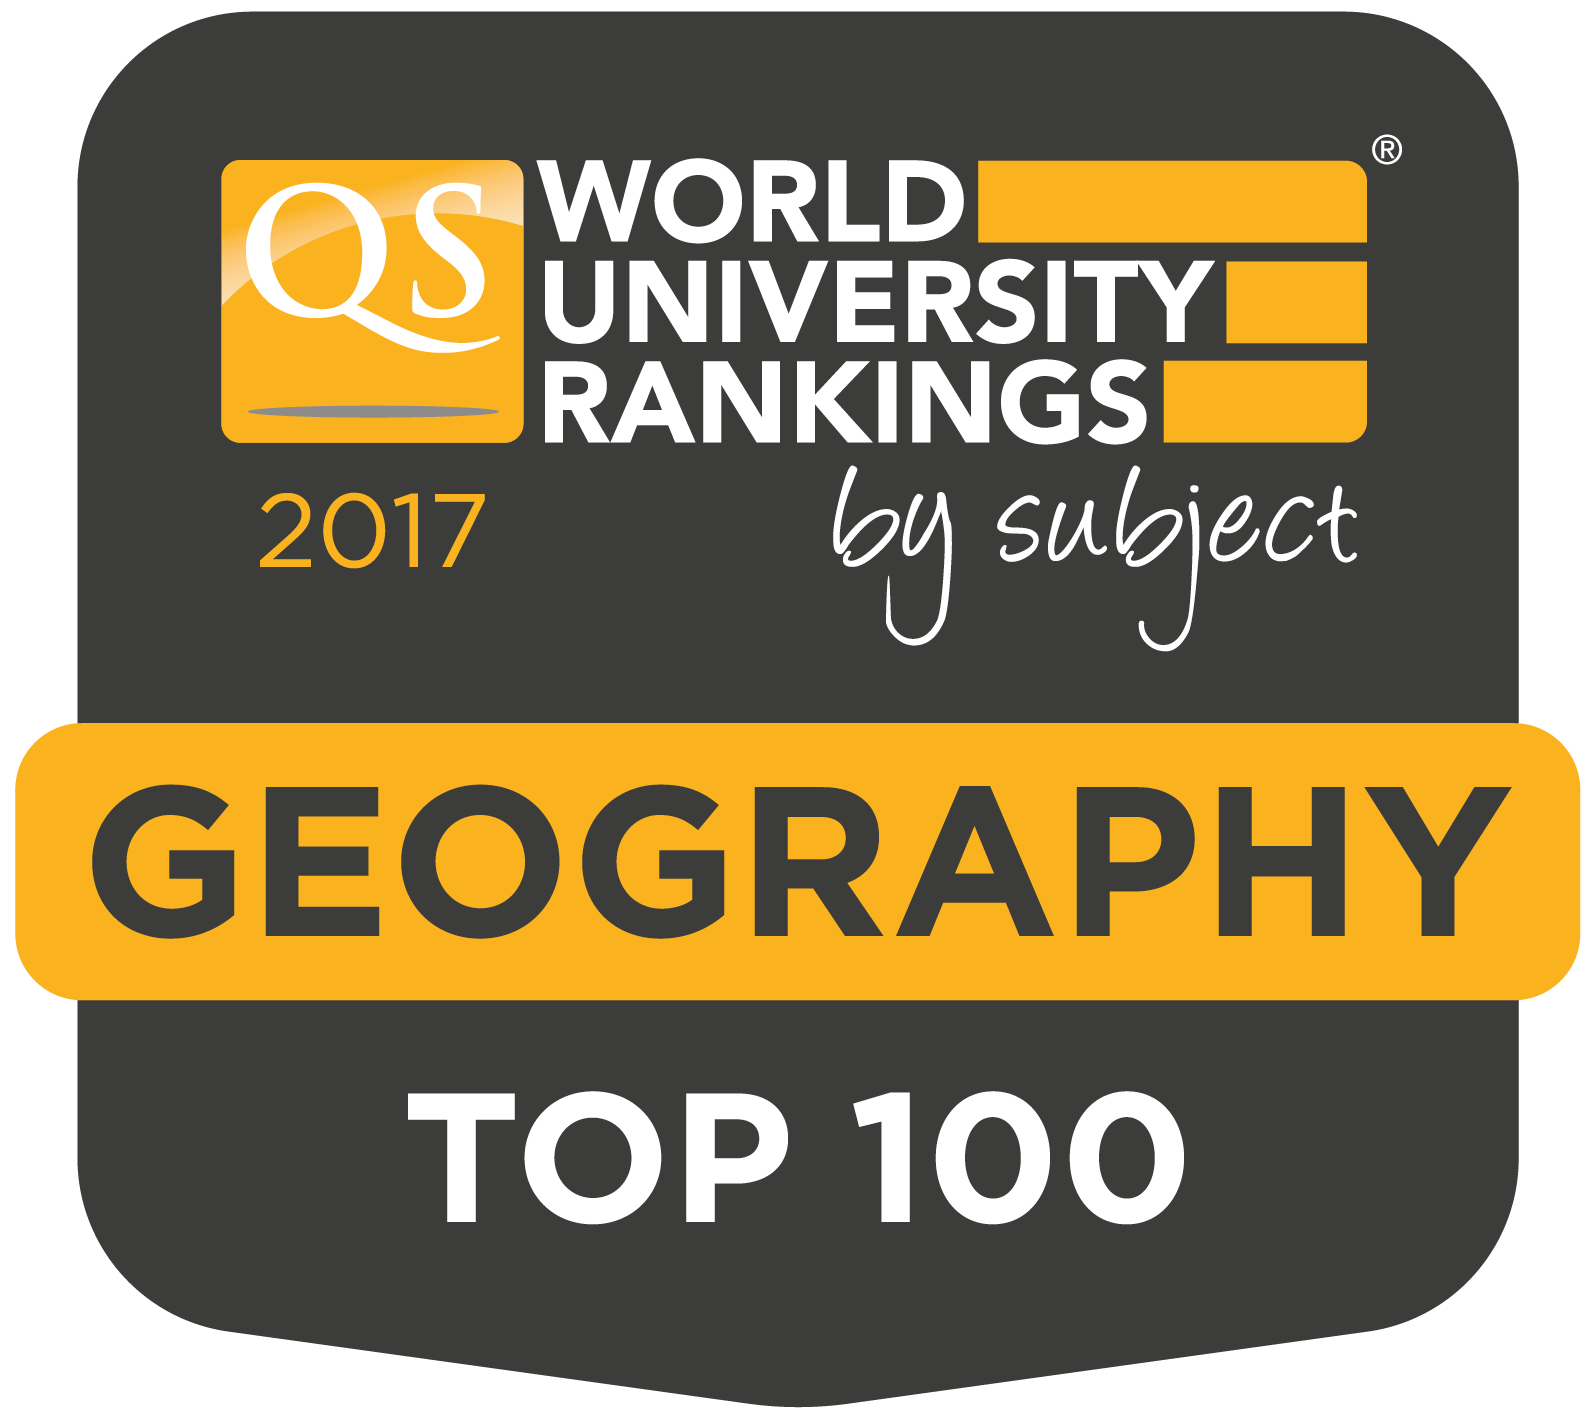 Geography of the Universidade de Lisboa has been ranked TOP 100 in World and leads in the Ibero-America